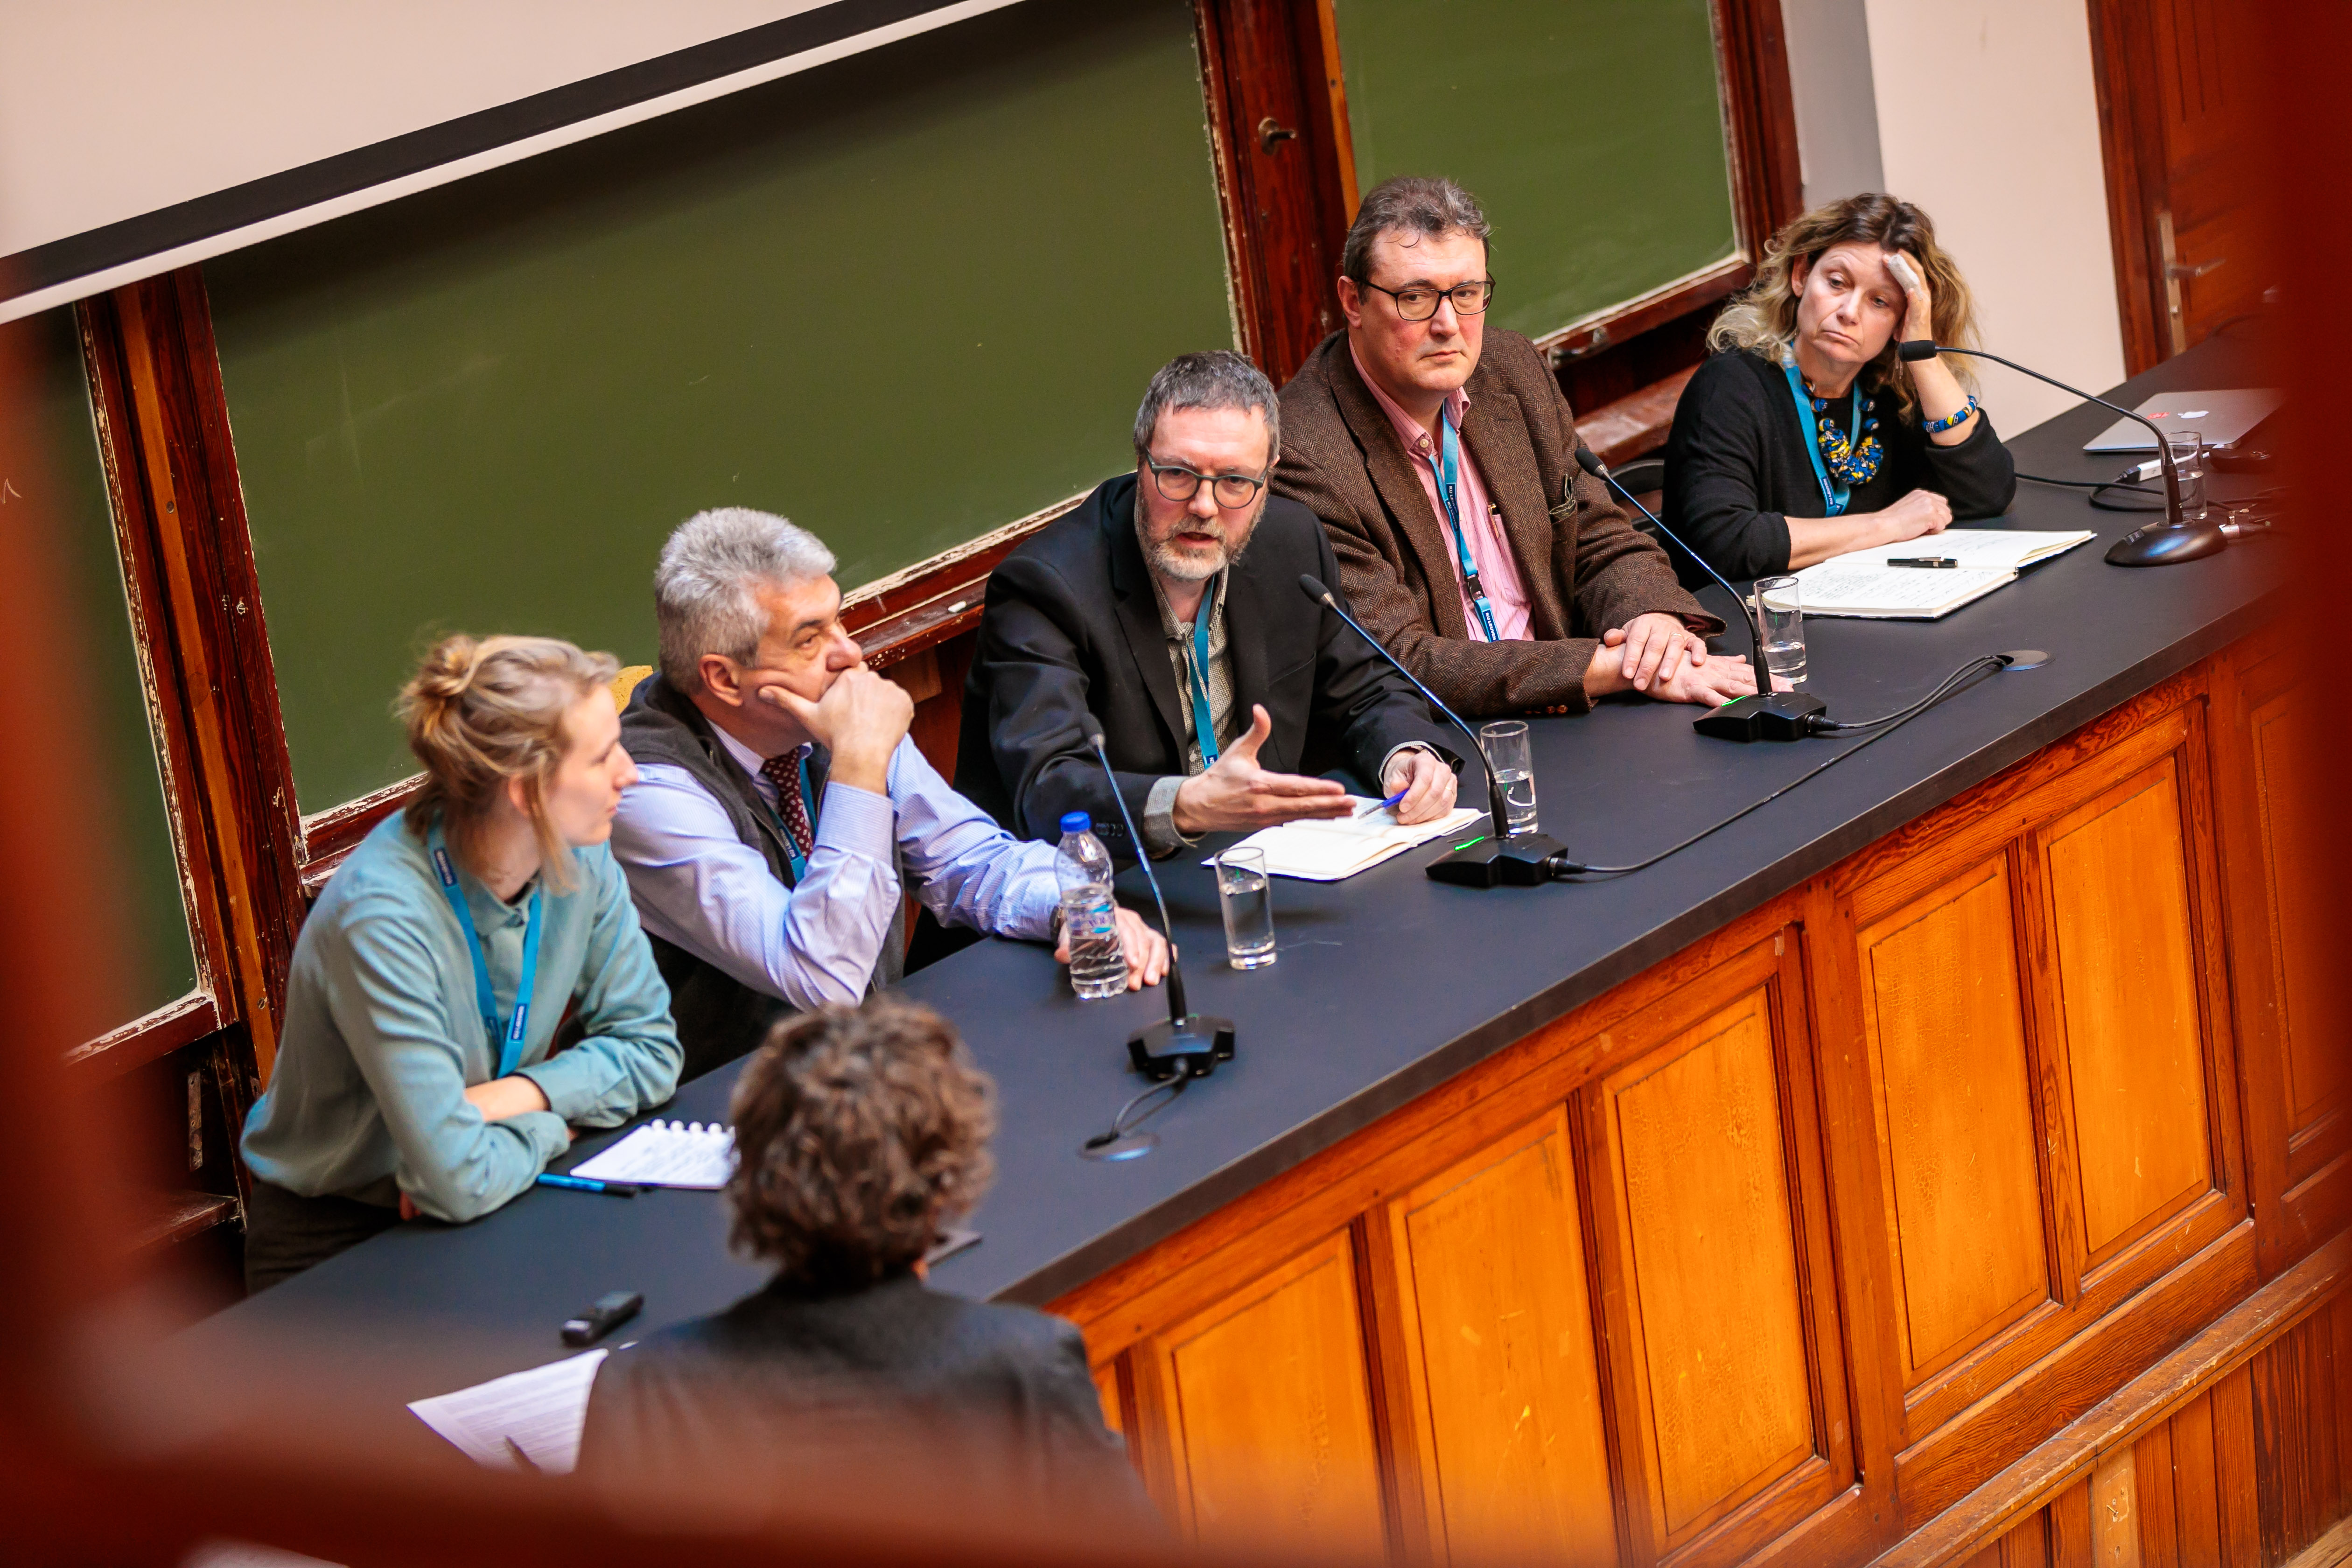 From left to right: Marieke Meesters (Wageningen U.), Kostas Komnitsas (METGROW+), Karel Van Acker (KU Leuven), Egbert Lox (Umicore), Leida Rijnhout (Friends of the Earth Europe) (credits image: Nicolas Herbots)